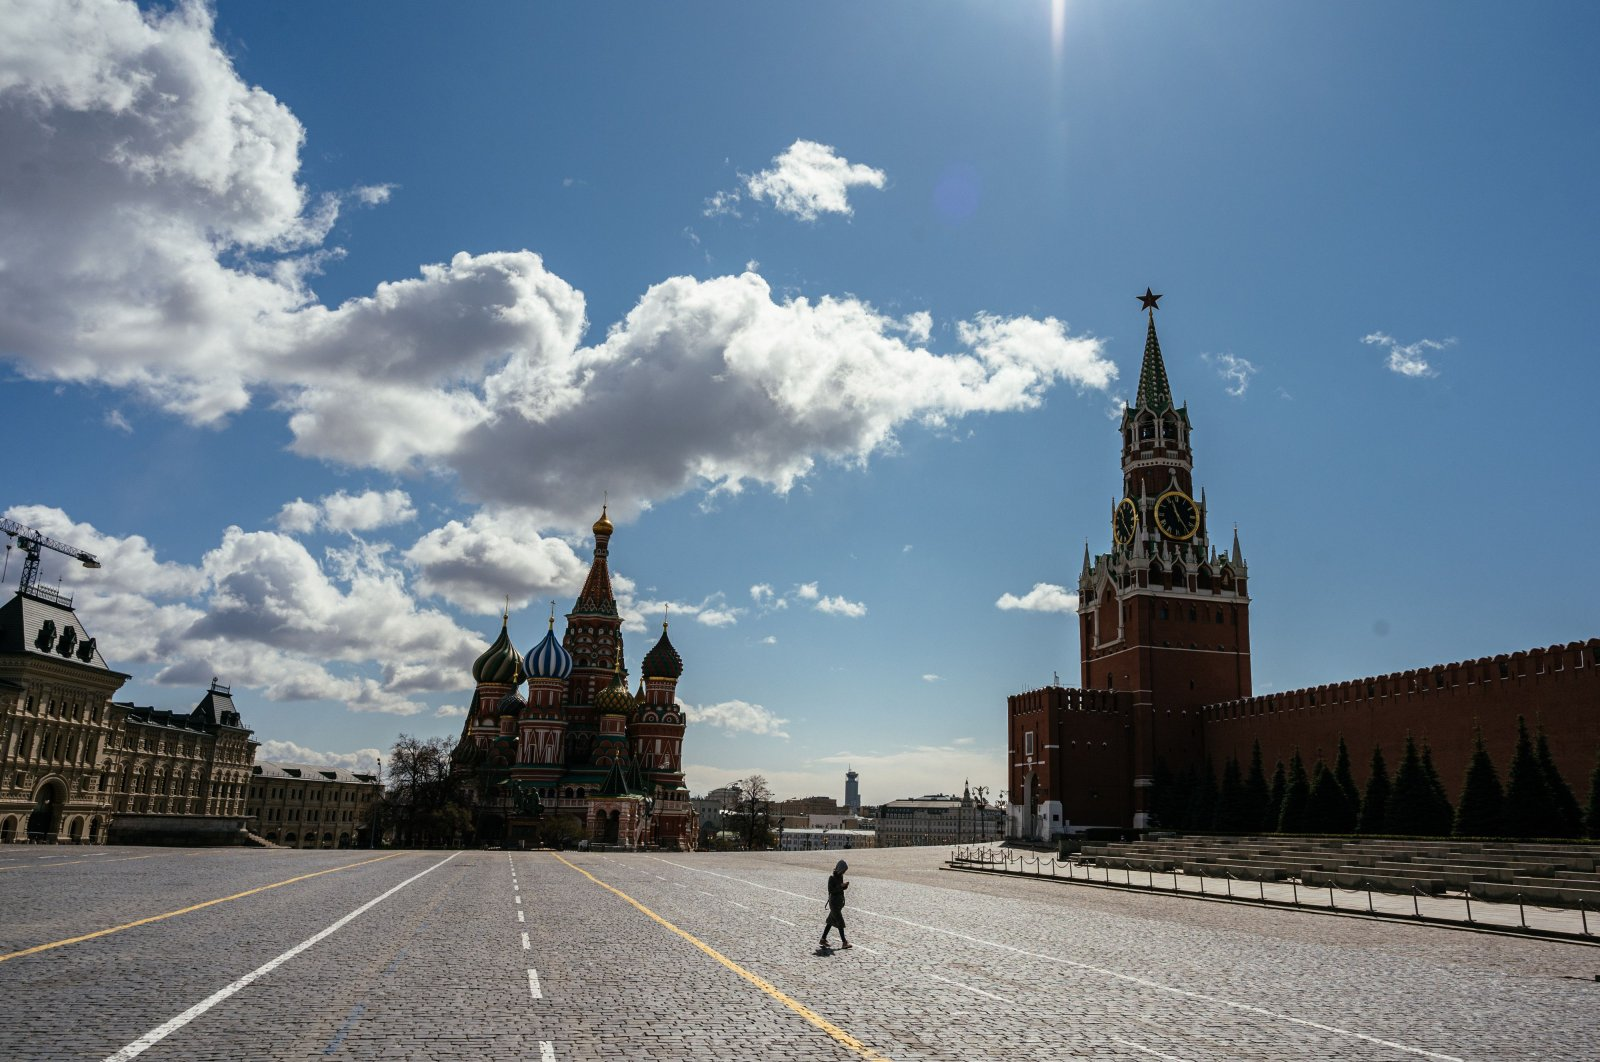 A person walks on the deserted Red Square in front of St. Basil's Cathedral and the Kremlin's Spasskaya Tower in downtown Moscow on April 22, 2020, during a strict lockdown in Russia to stop the spread of the novel coronavirus COVID-19. (AFP Photo)